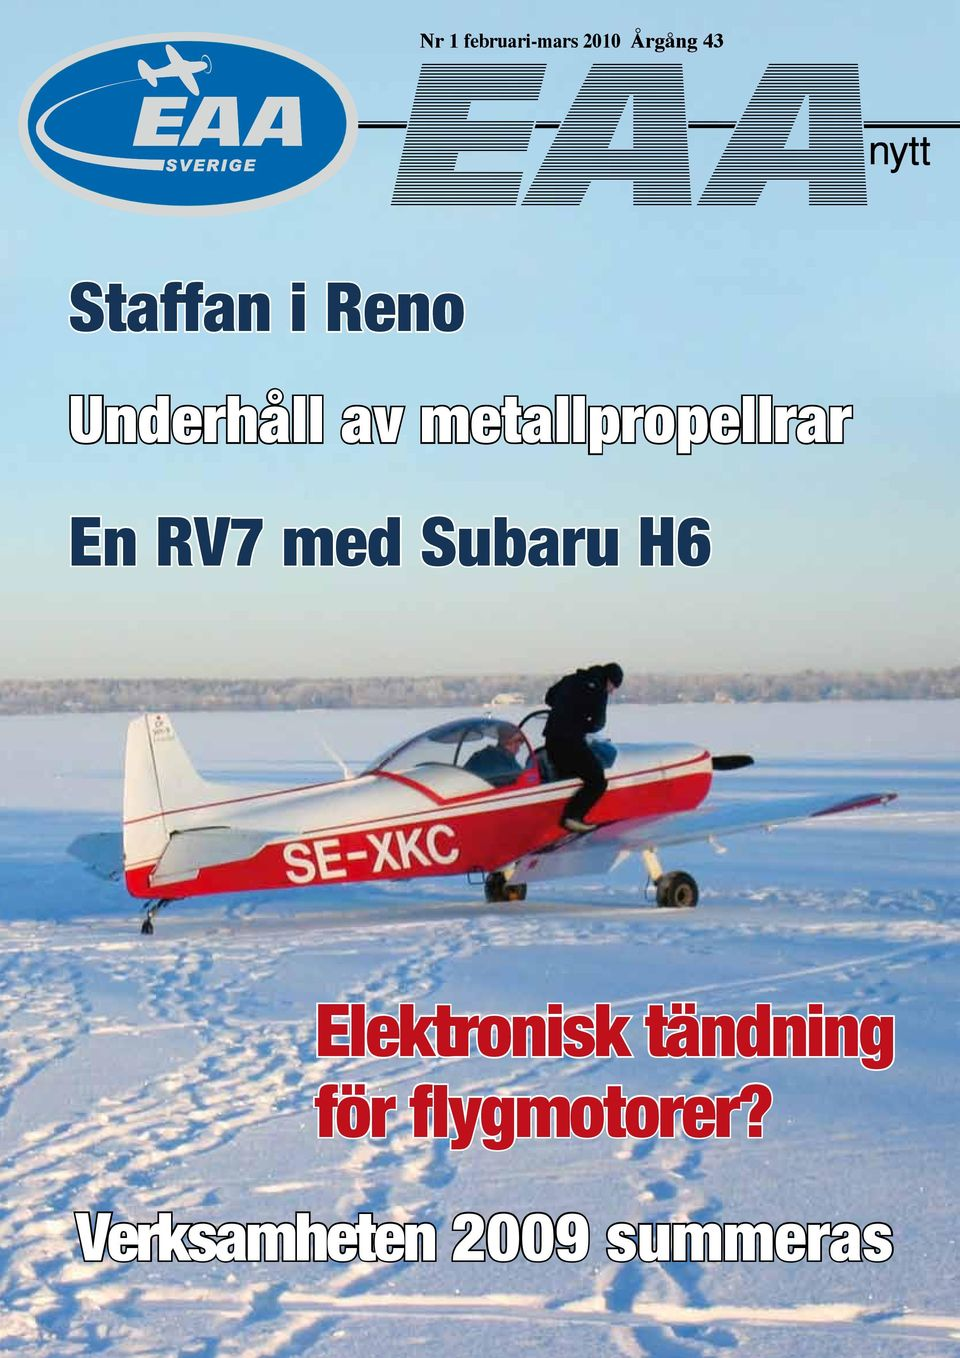 metallpropellrar En RV7 med Subaru H6